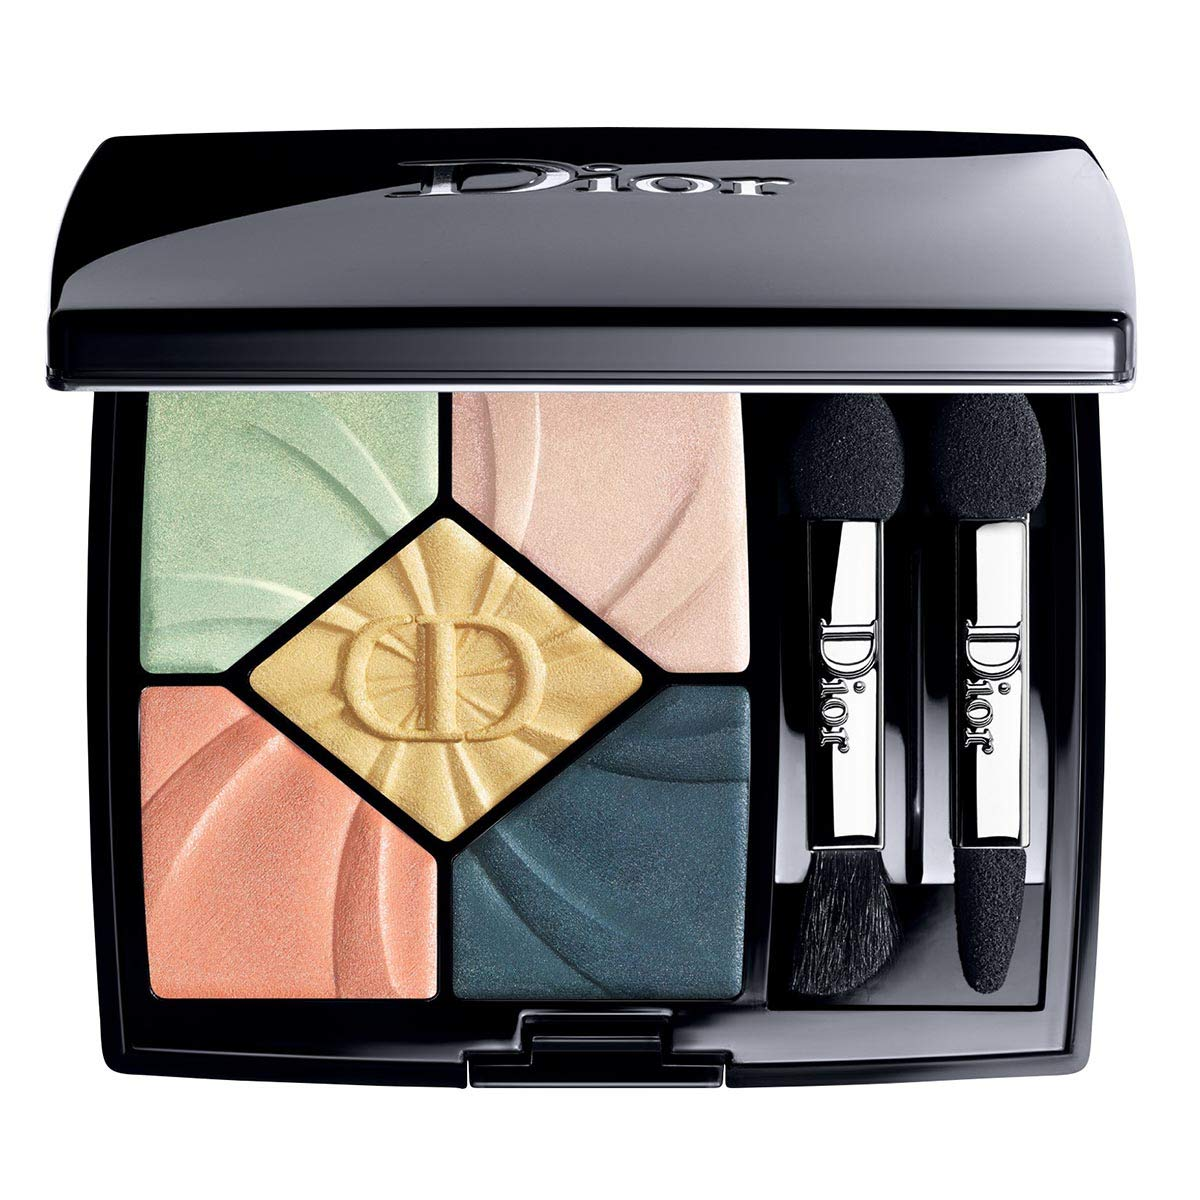 Christian Dior 5 Couleurs Lolli'Glow Eyeshadow Pallette, Mellow Shade 447, 0.10 Ounce